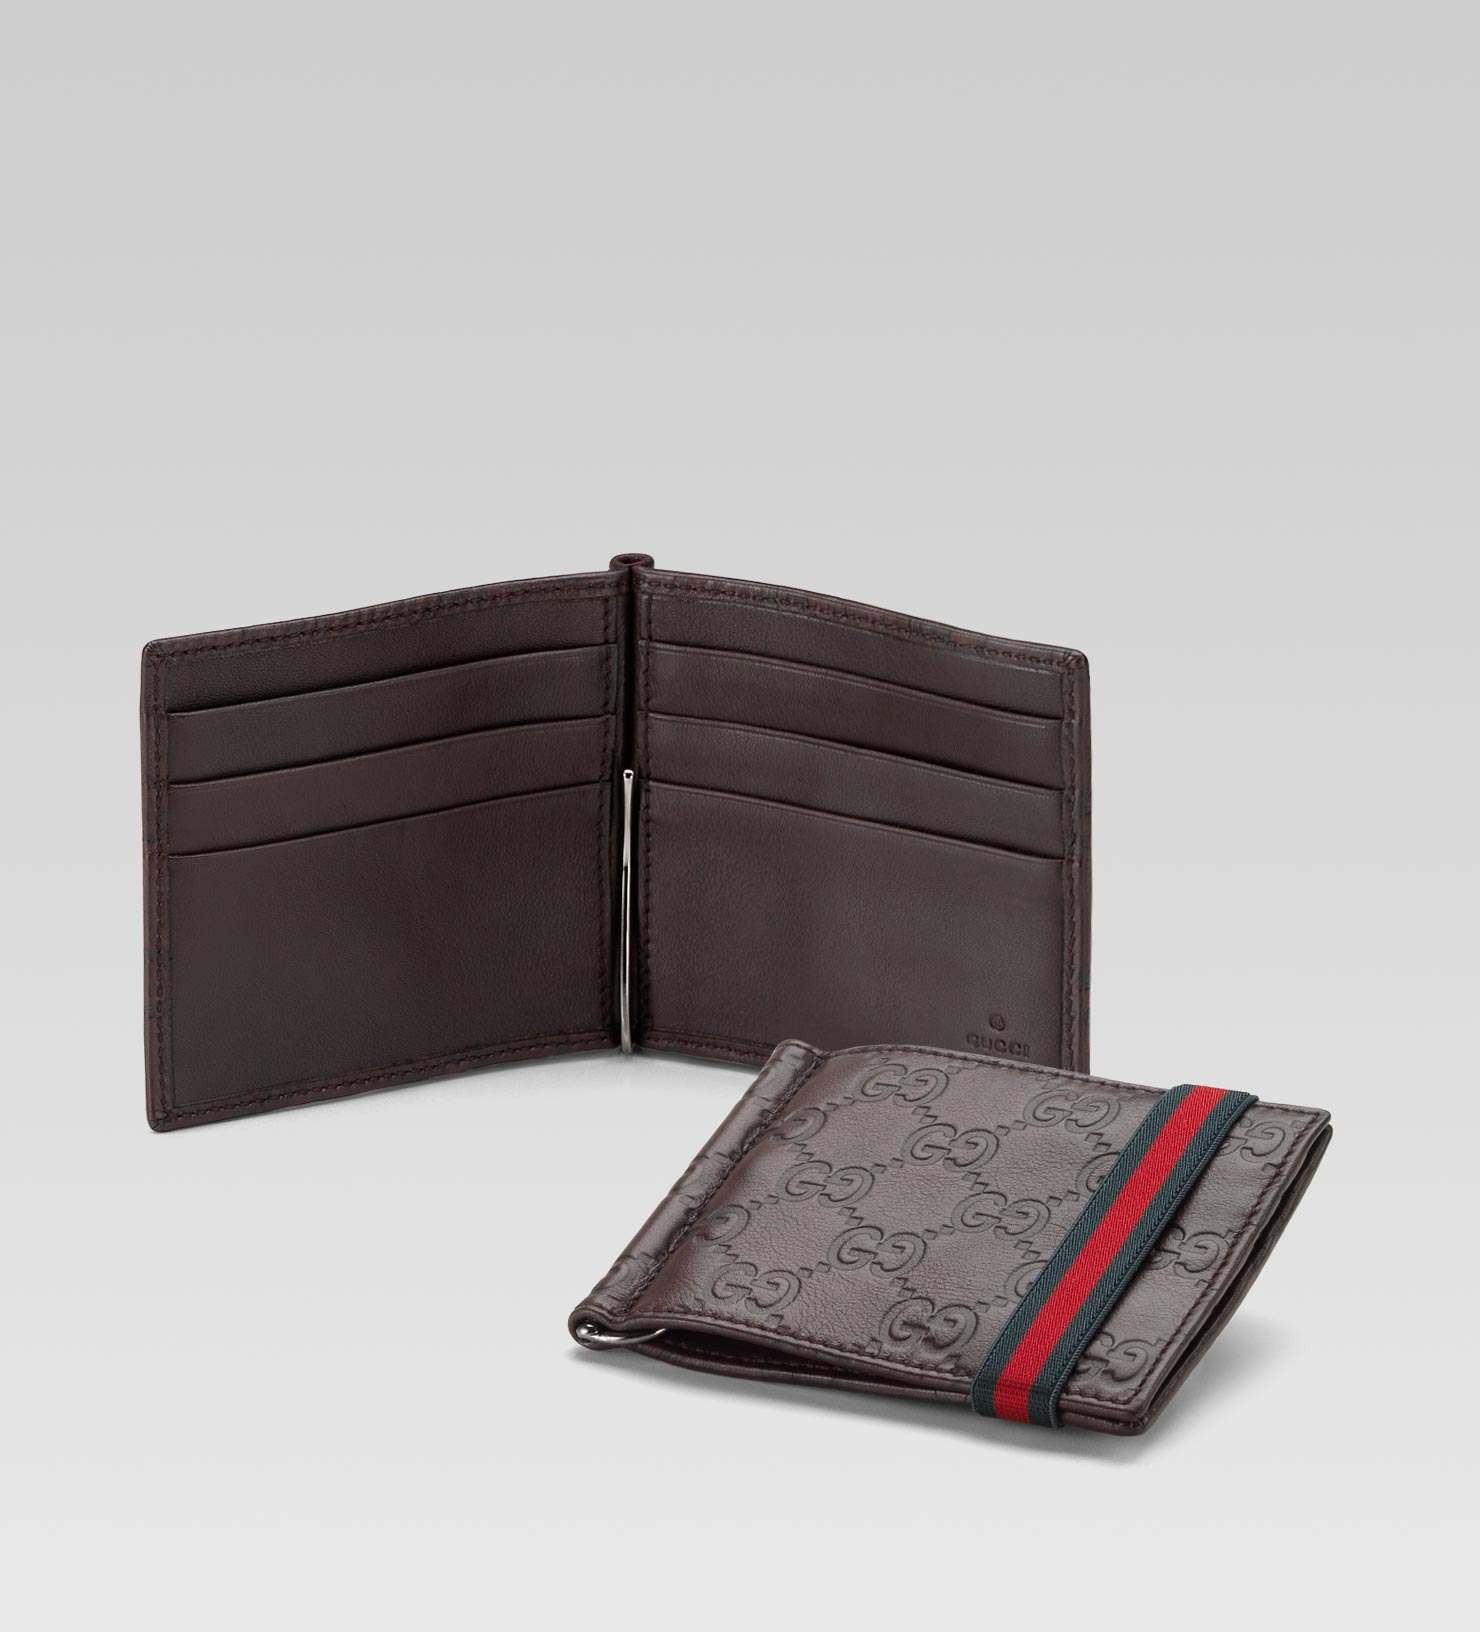 Mens Credit Card Holder with Money Clip | Luxury Mens Wallets | Gucci Money Clip